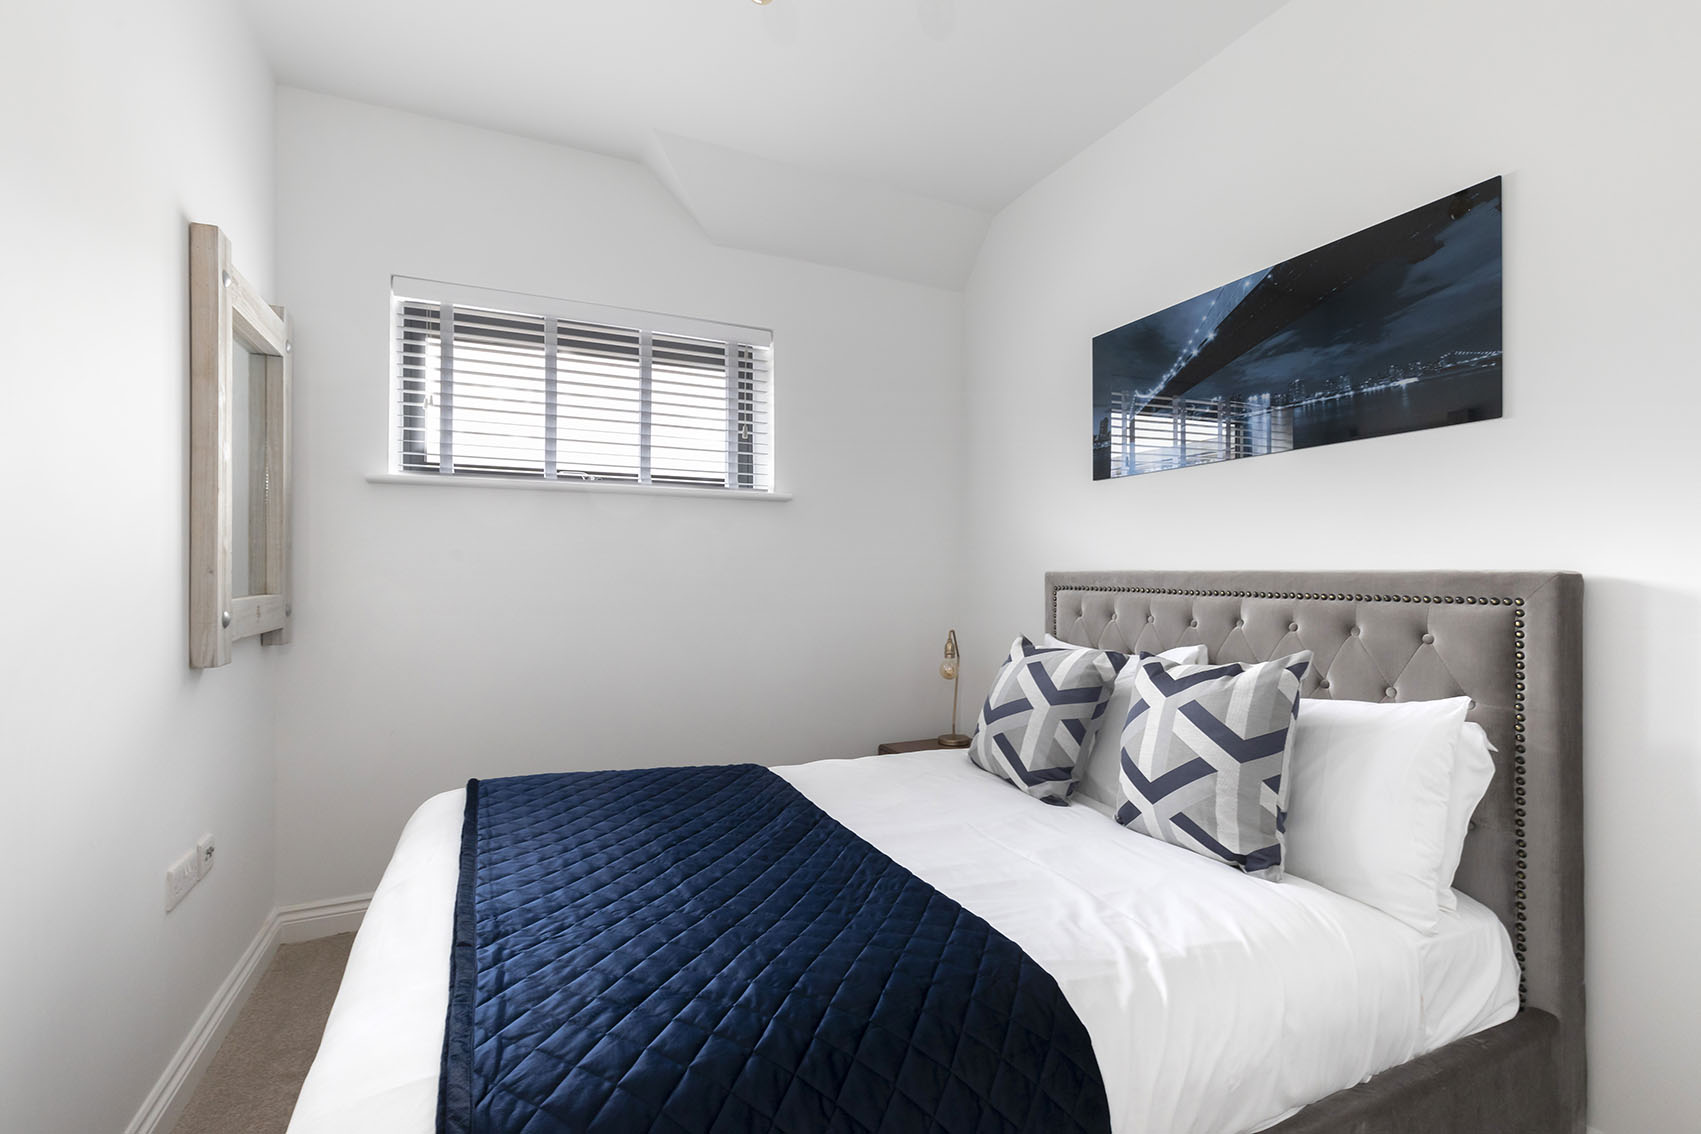 Bed at Apartment 12 Mariners Court, The Docks, Gloucester - Citybase Apartments